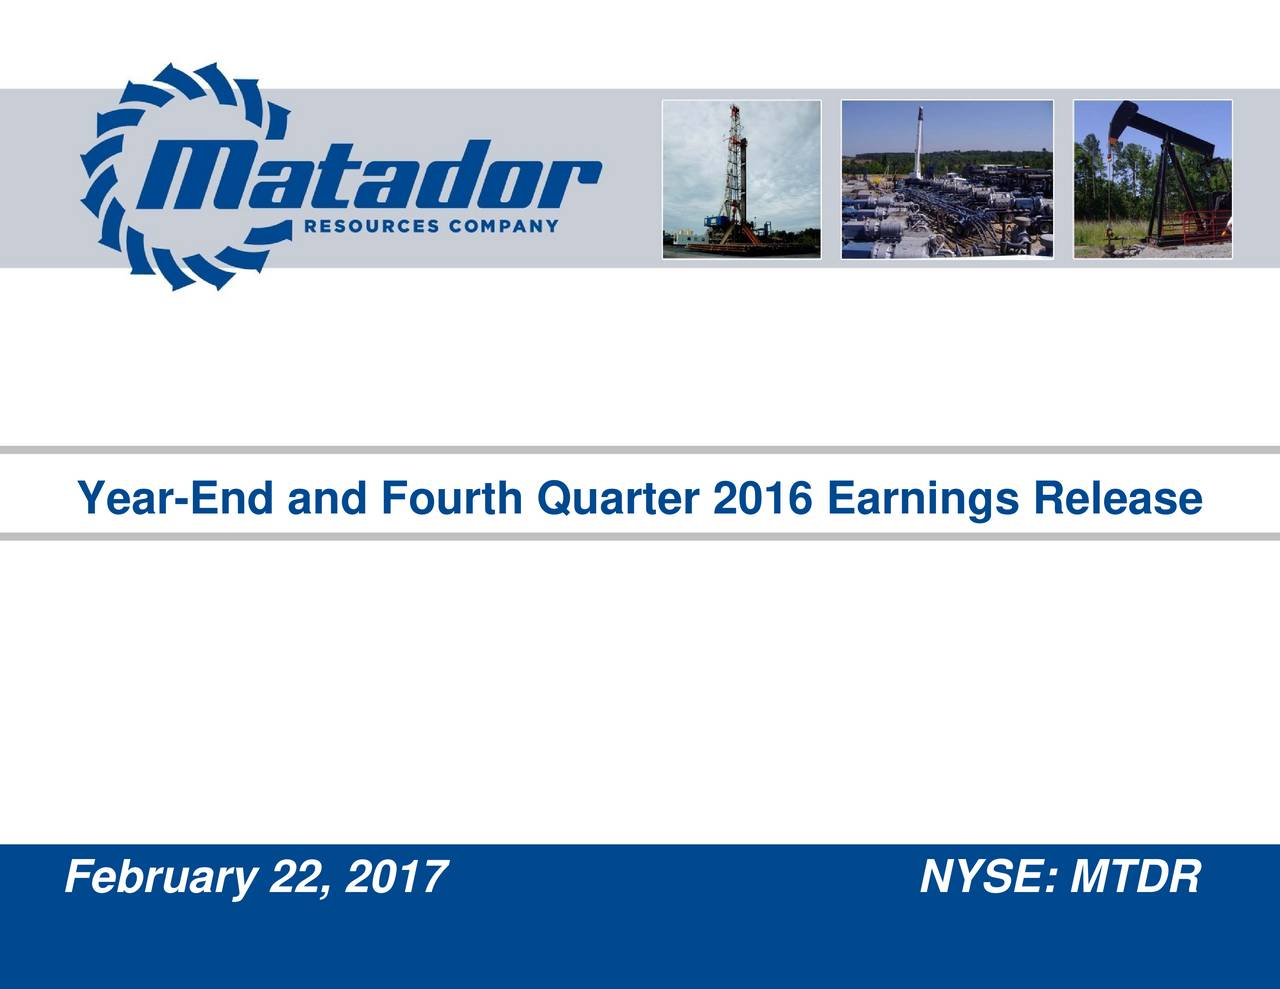 Year-End and Fourth Quarter 2016 Earnings Release February 22, 2017